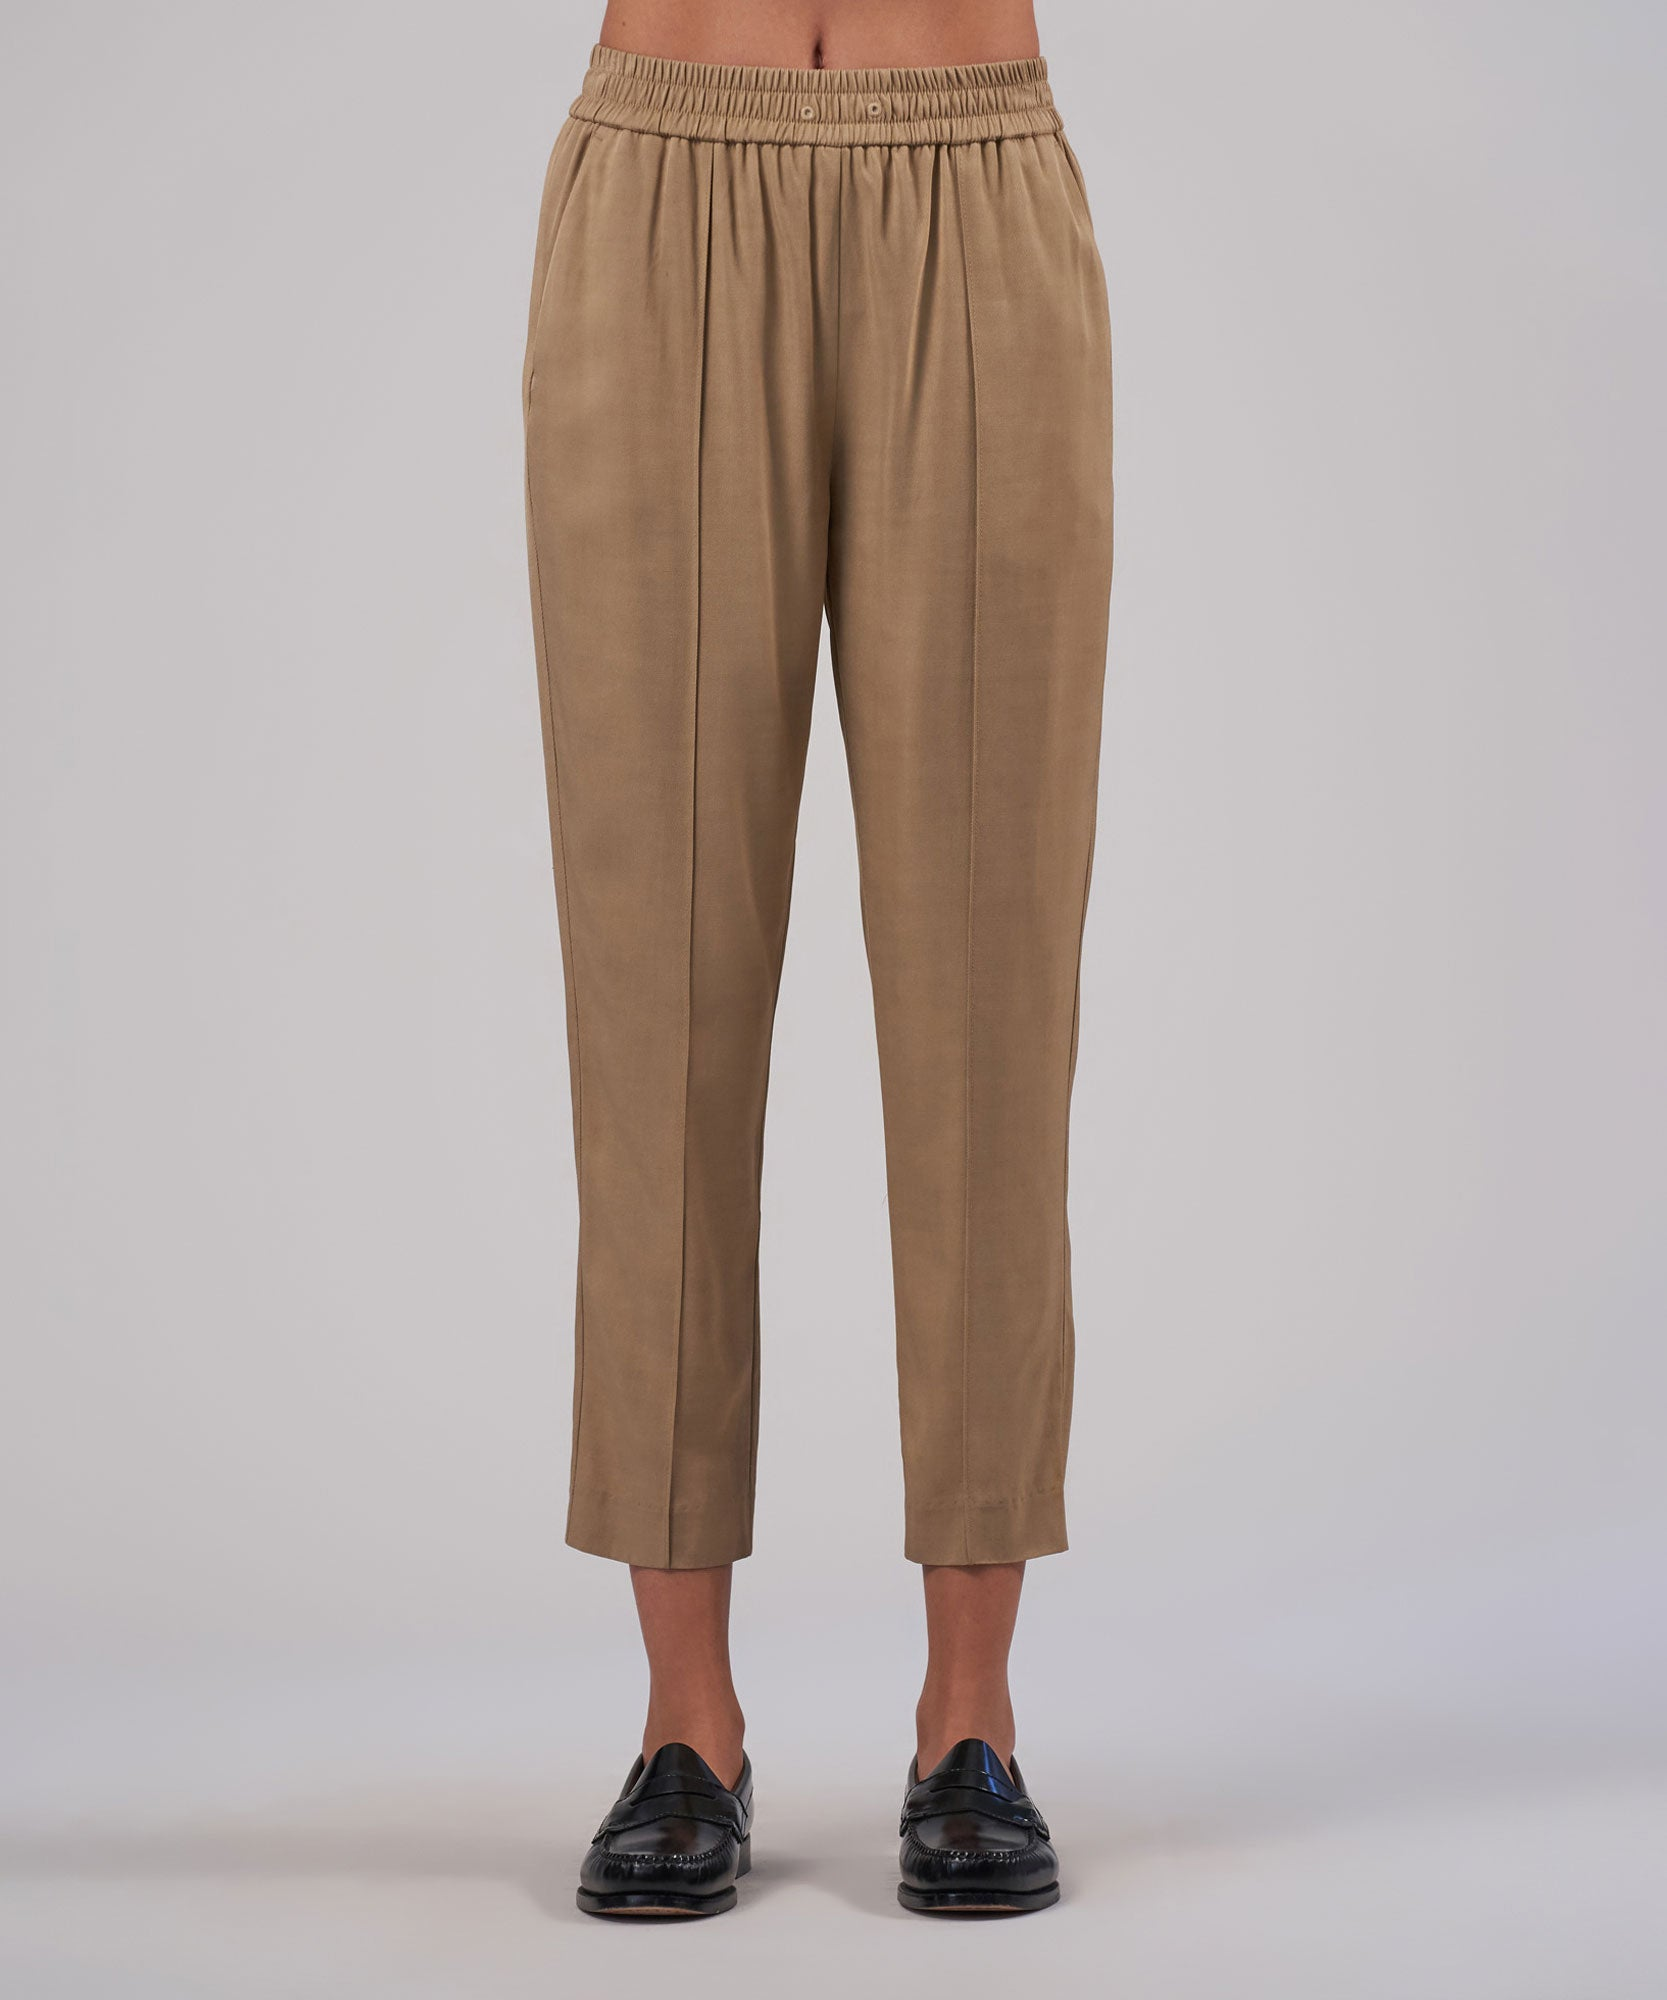 Dune Viscose Twill Cropped Pull-On Pants - Women's Luxe Loungewear by ATM Anthony Thomas Melillo